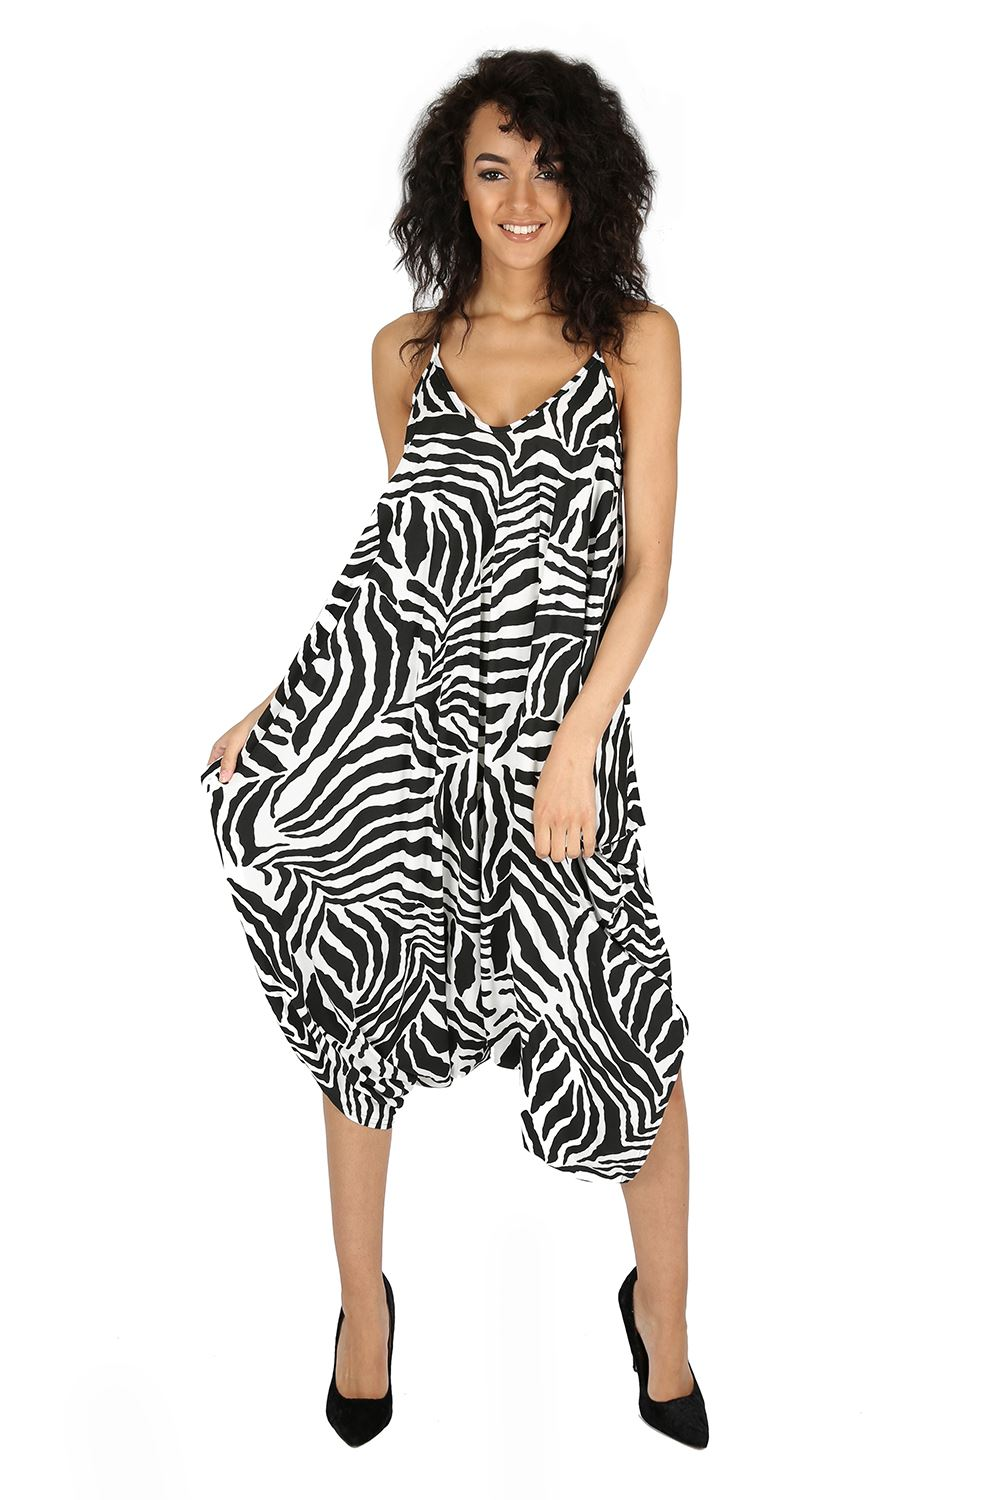 Amazing Jumpsuits For Tall Women - Trendy Clothes